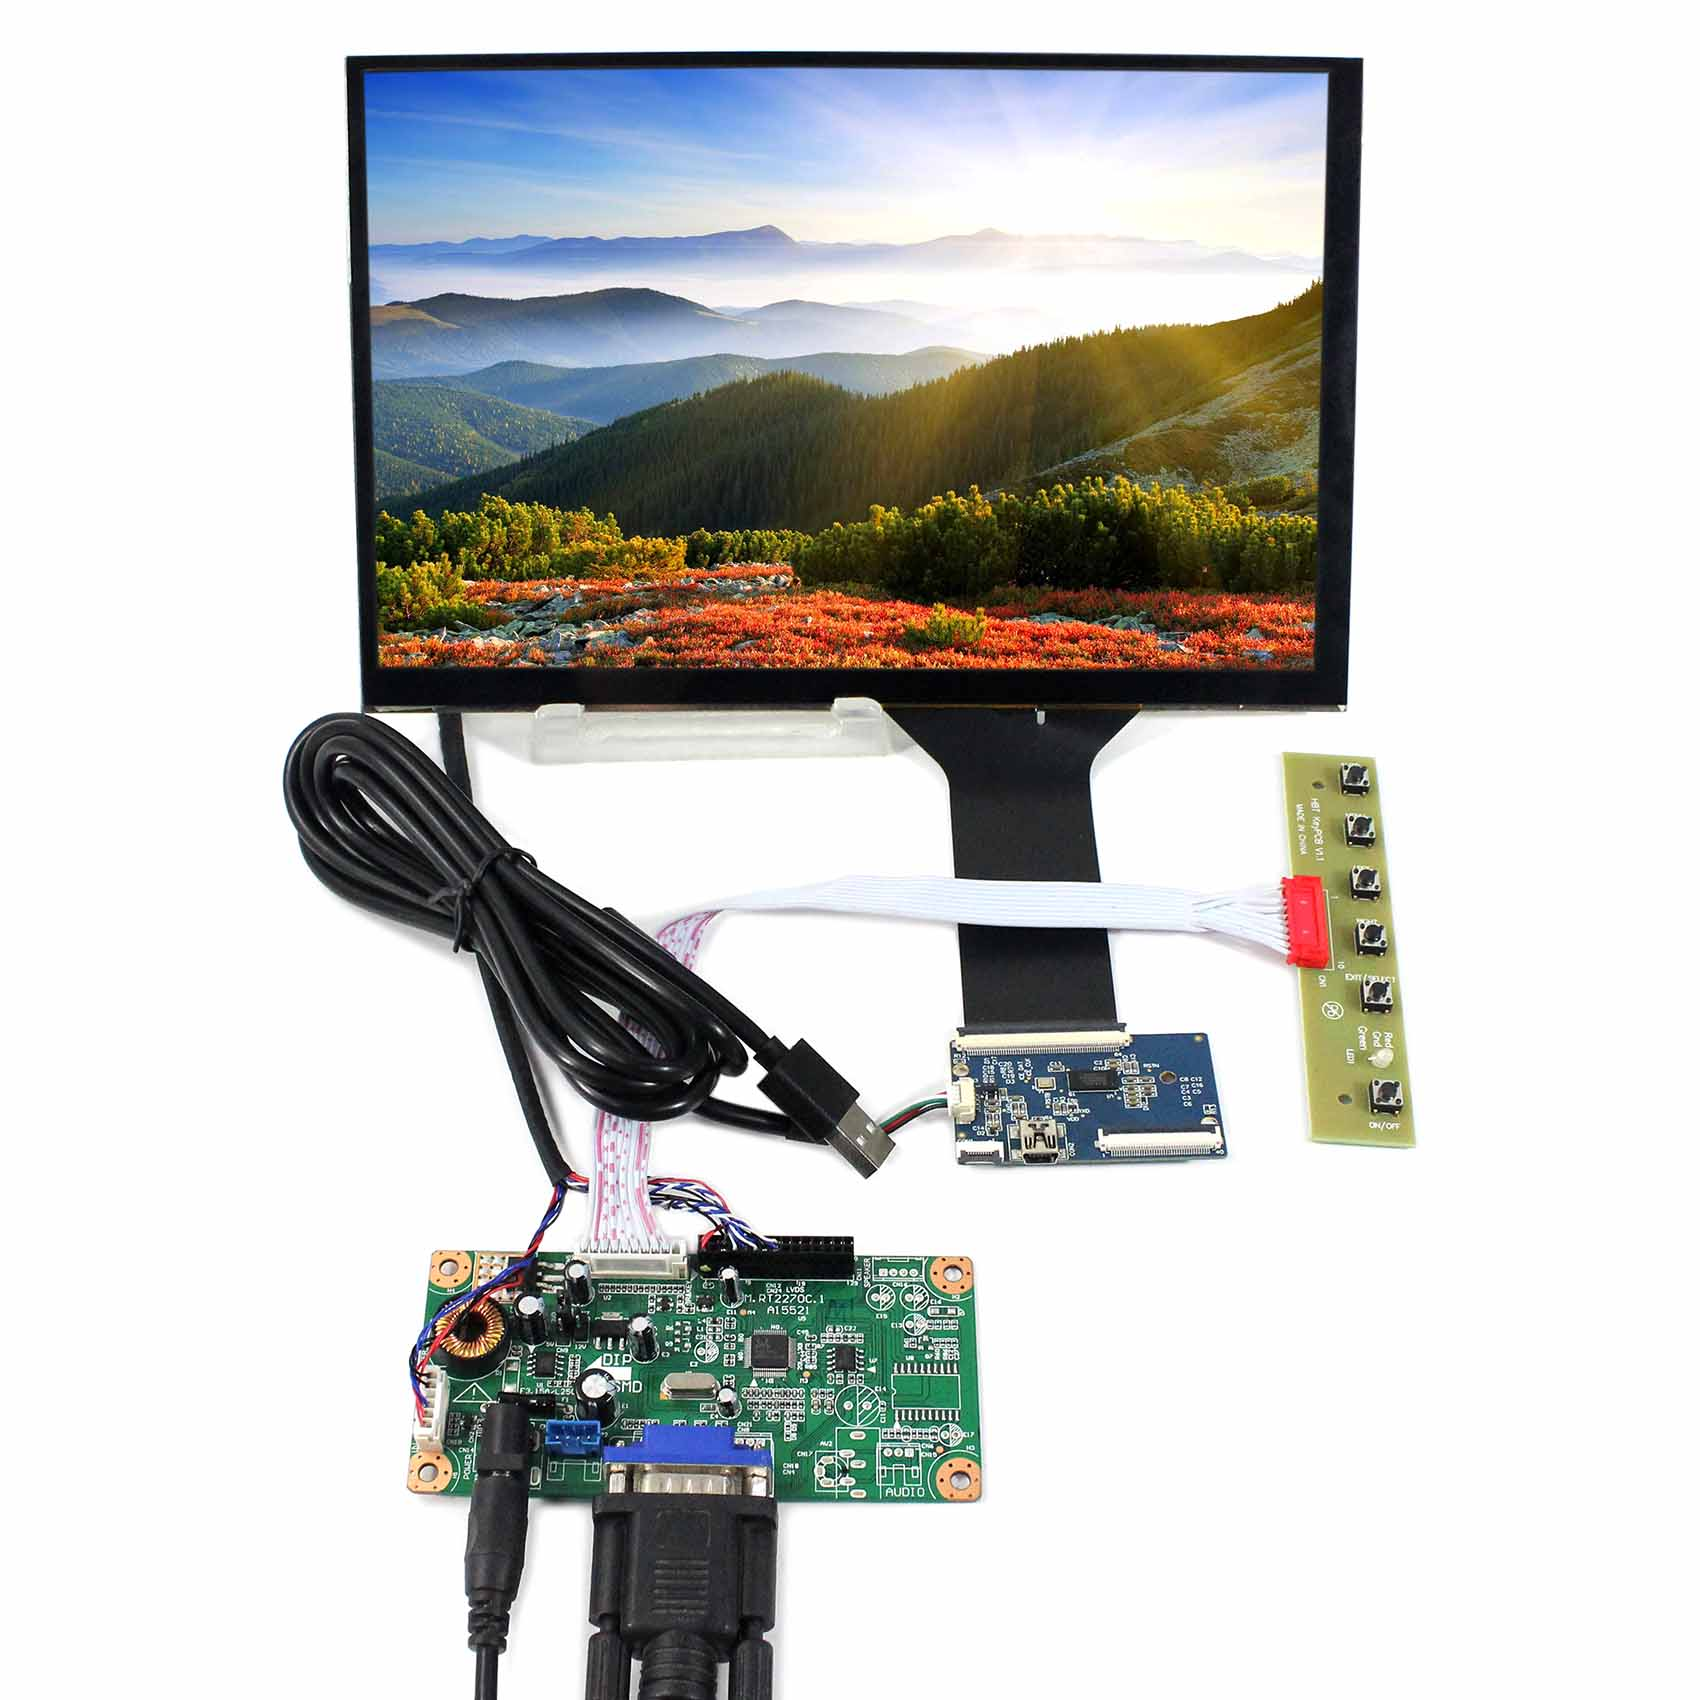 10.1 1280x800 LP101WX1 or B101EW05 Capacitive Touch LCD Screen with VGA LCD Driver Board 10.1 1280x800 LP101WX1 or B101EW05 Capacitive Touch LCD Screen with VGA LCD Driver Board